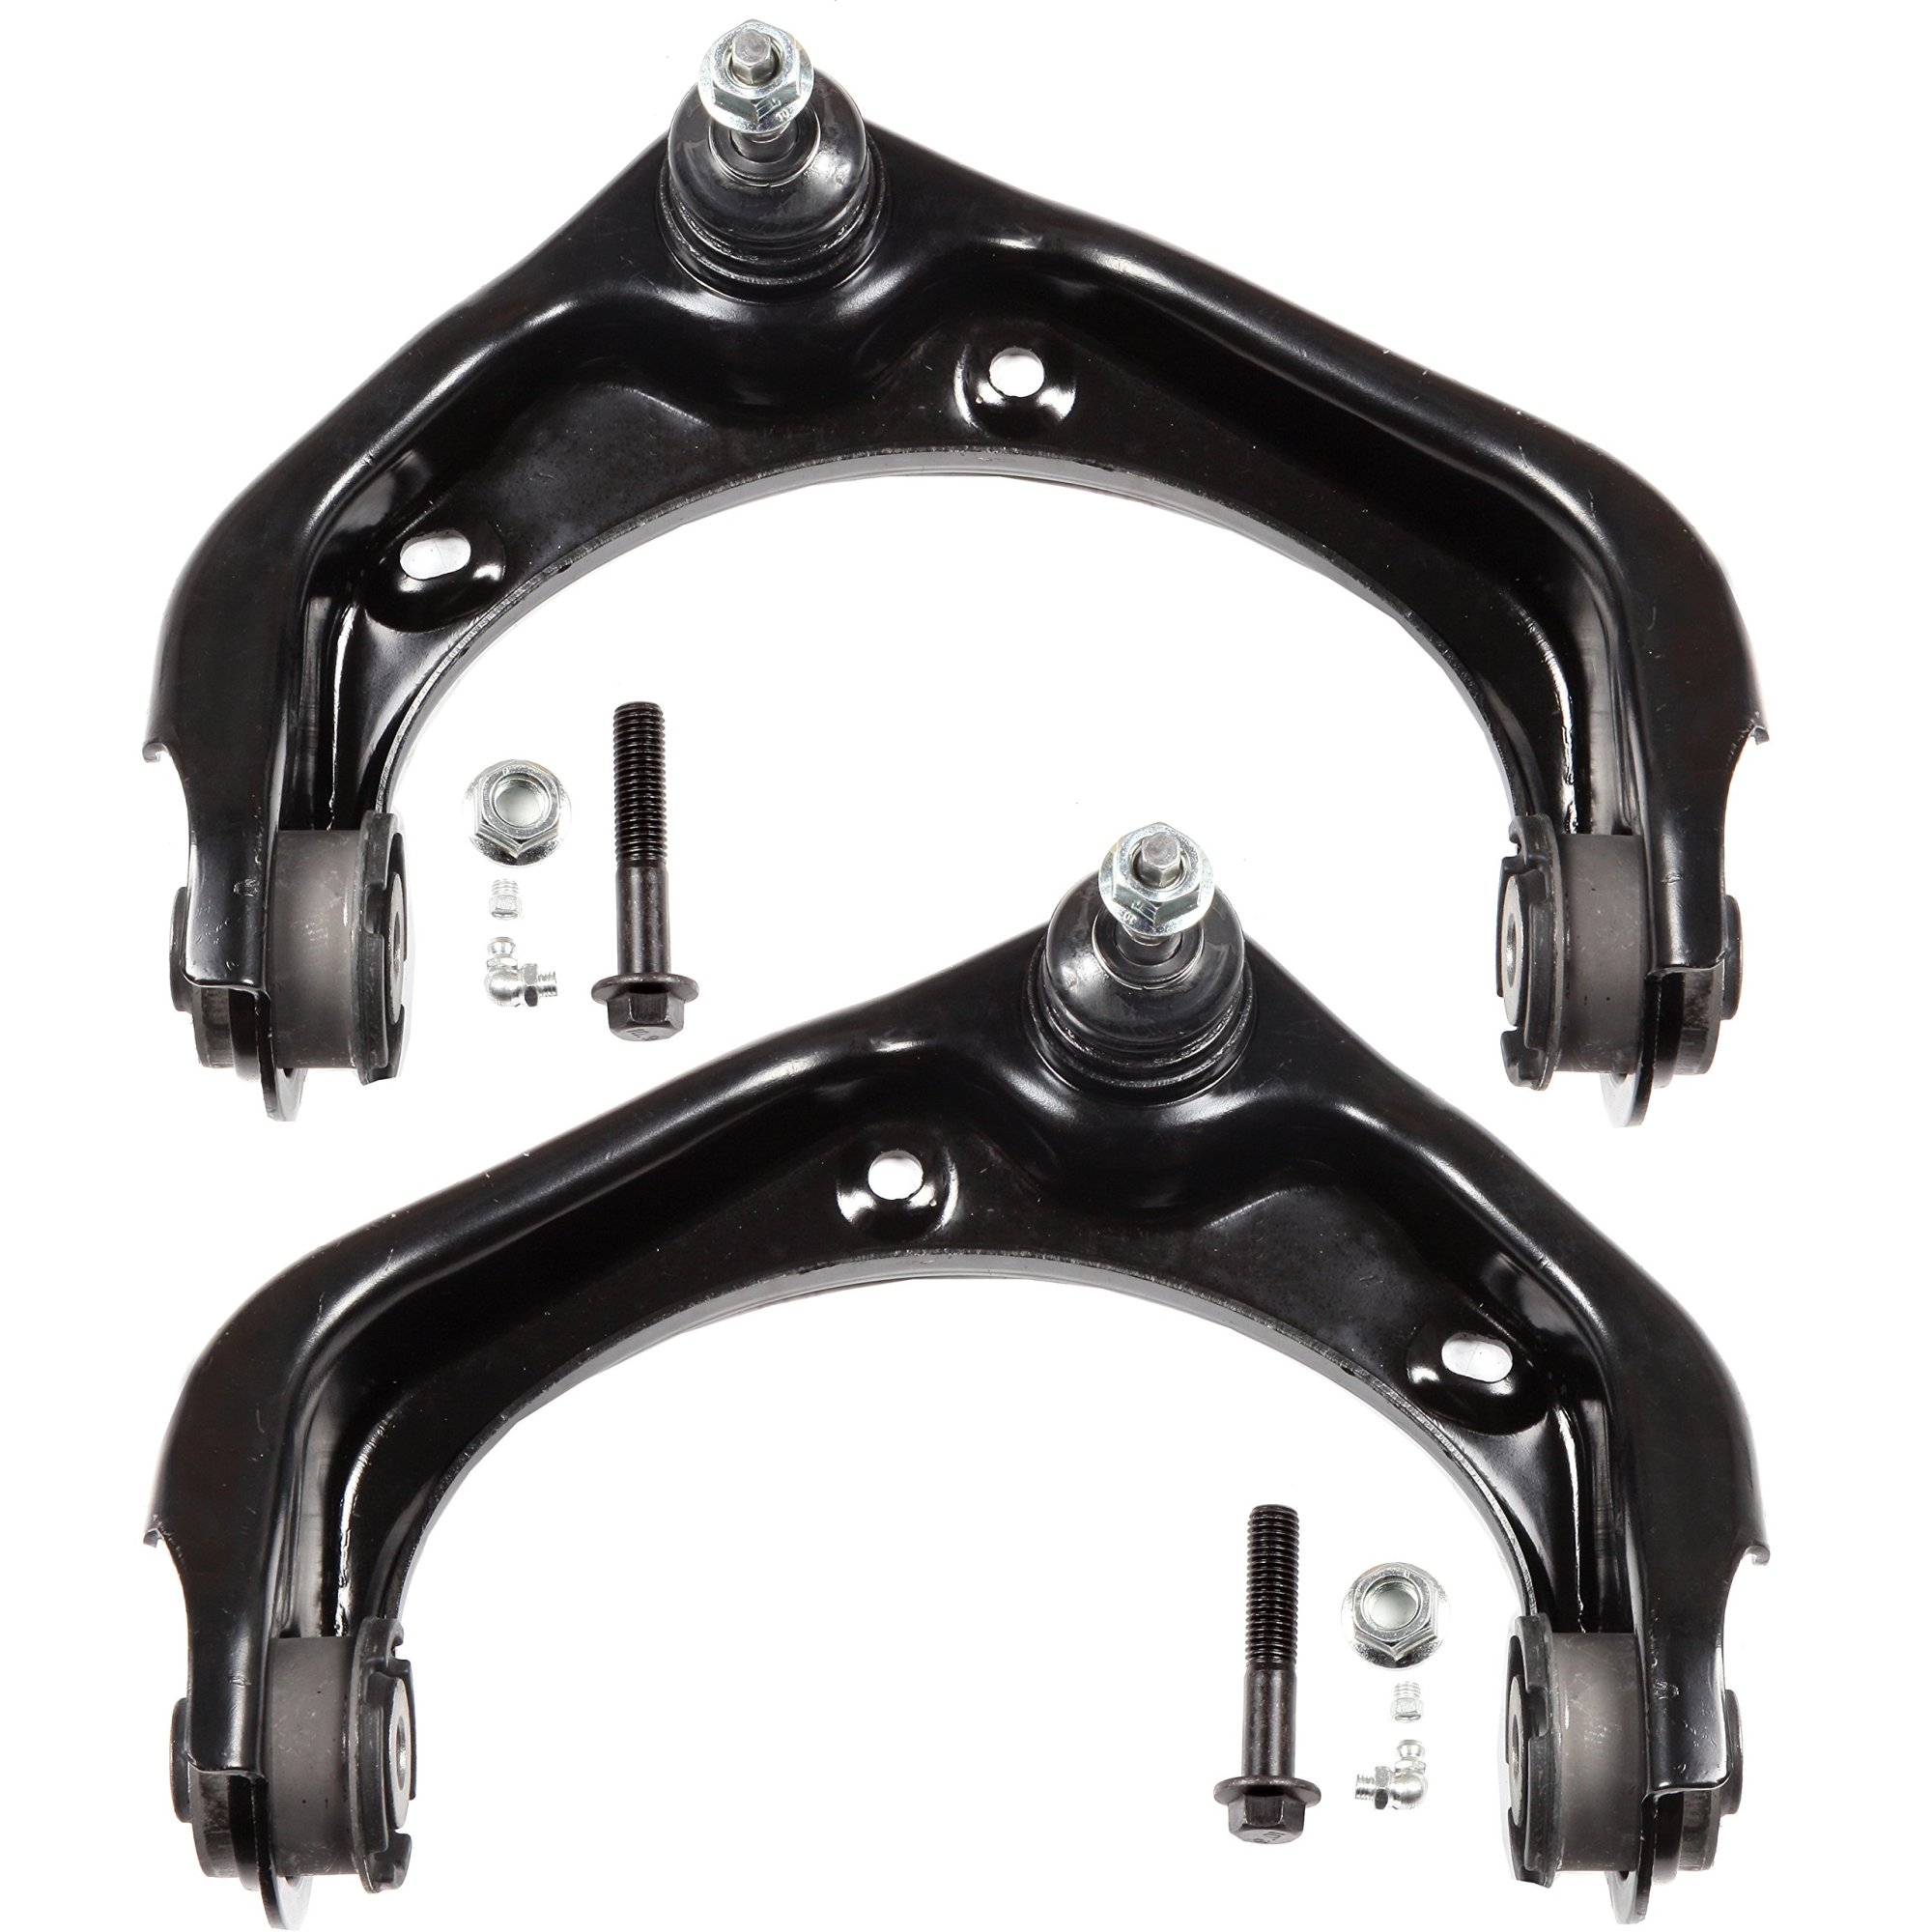 hight resolution of get quotations upper control arm for ford explorer ford explorer sport trac mercury mountaineer 2007 2008 2009 2010